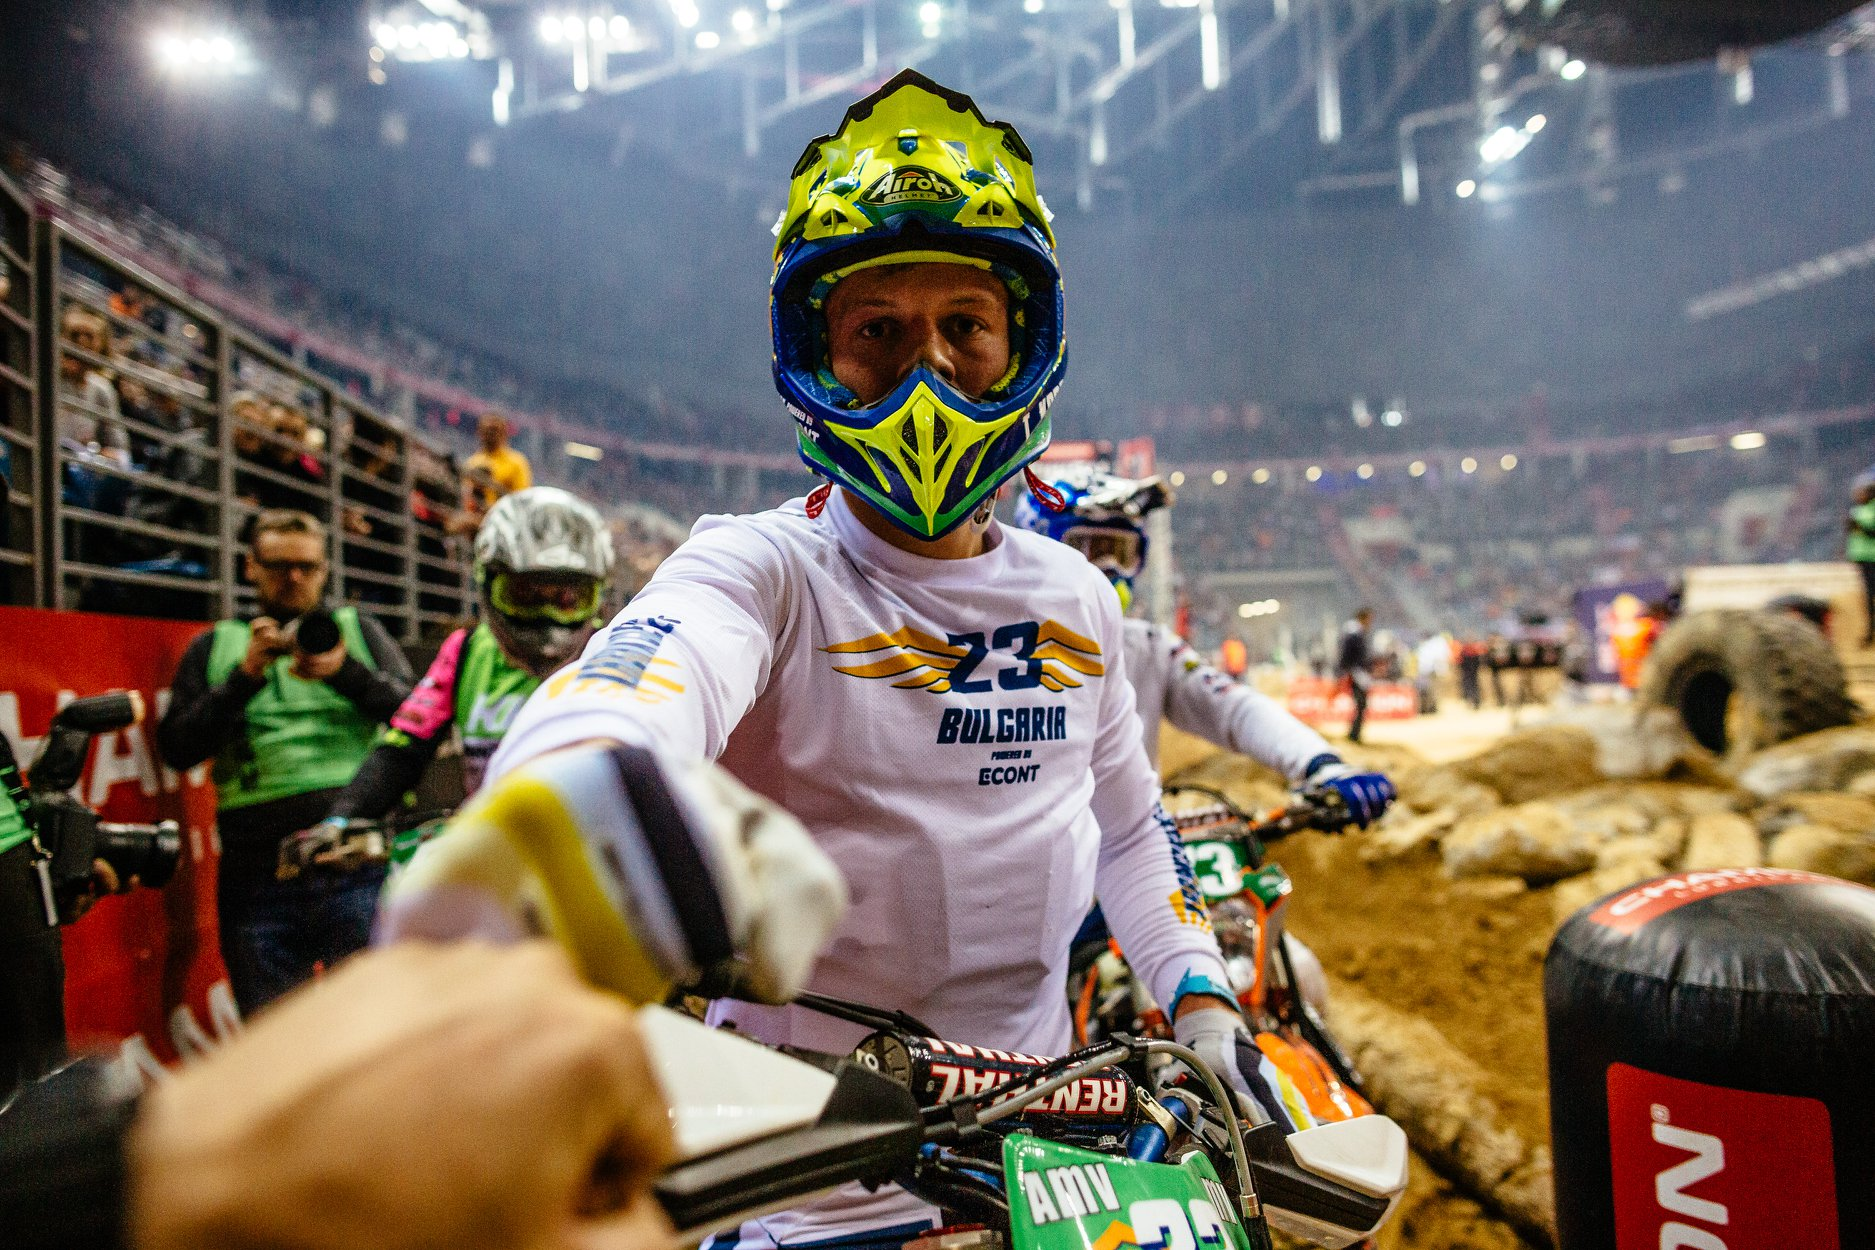 Teodor Kabakchiev in Superenduro Krakow giving a highfive